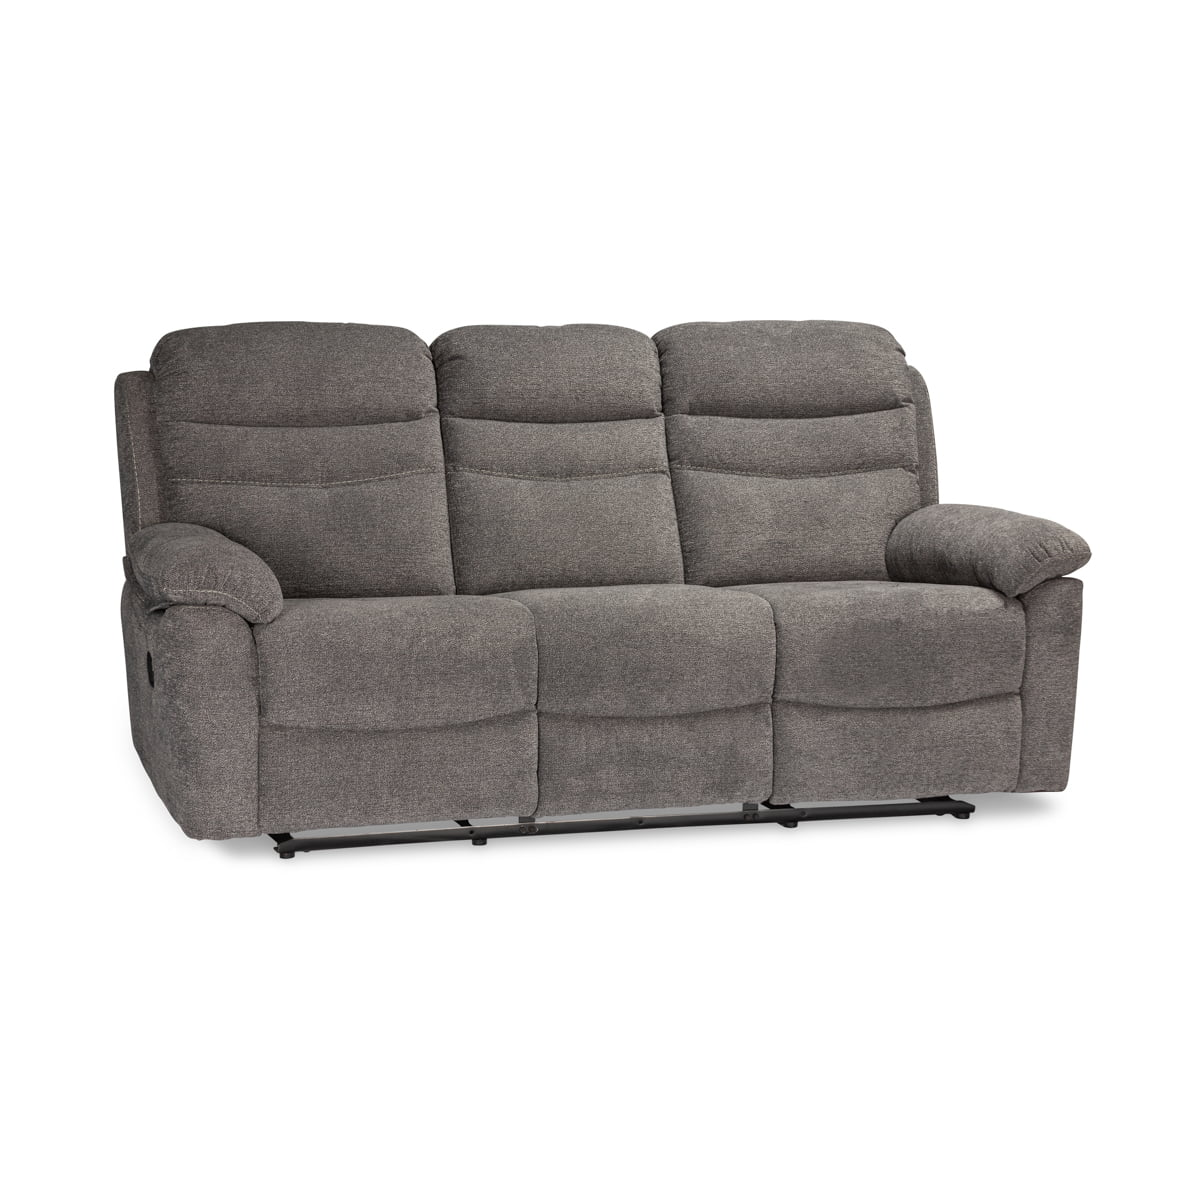 Bellmore Grey 3 Seater Recliner